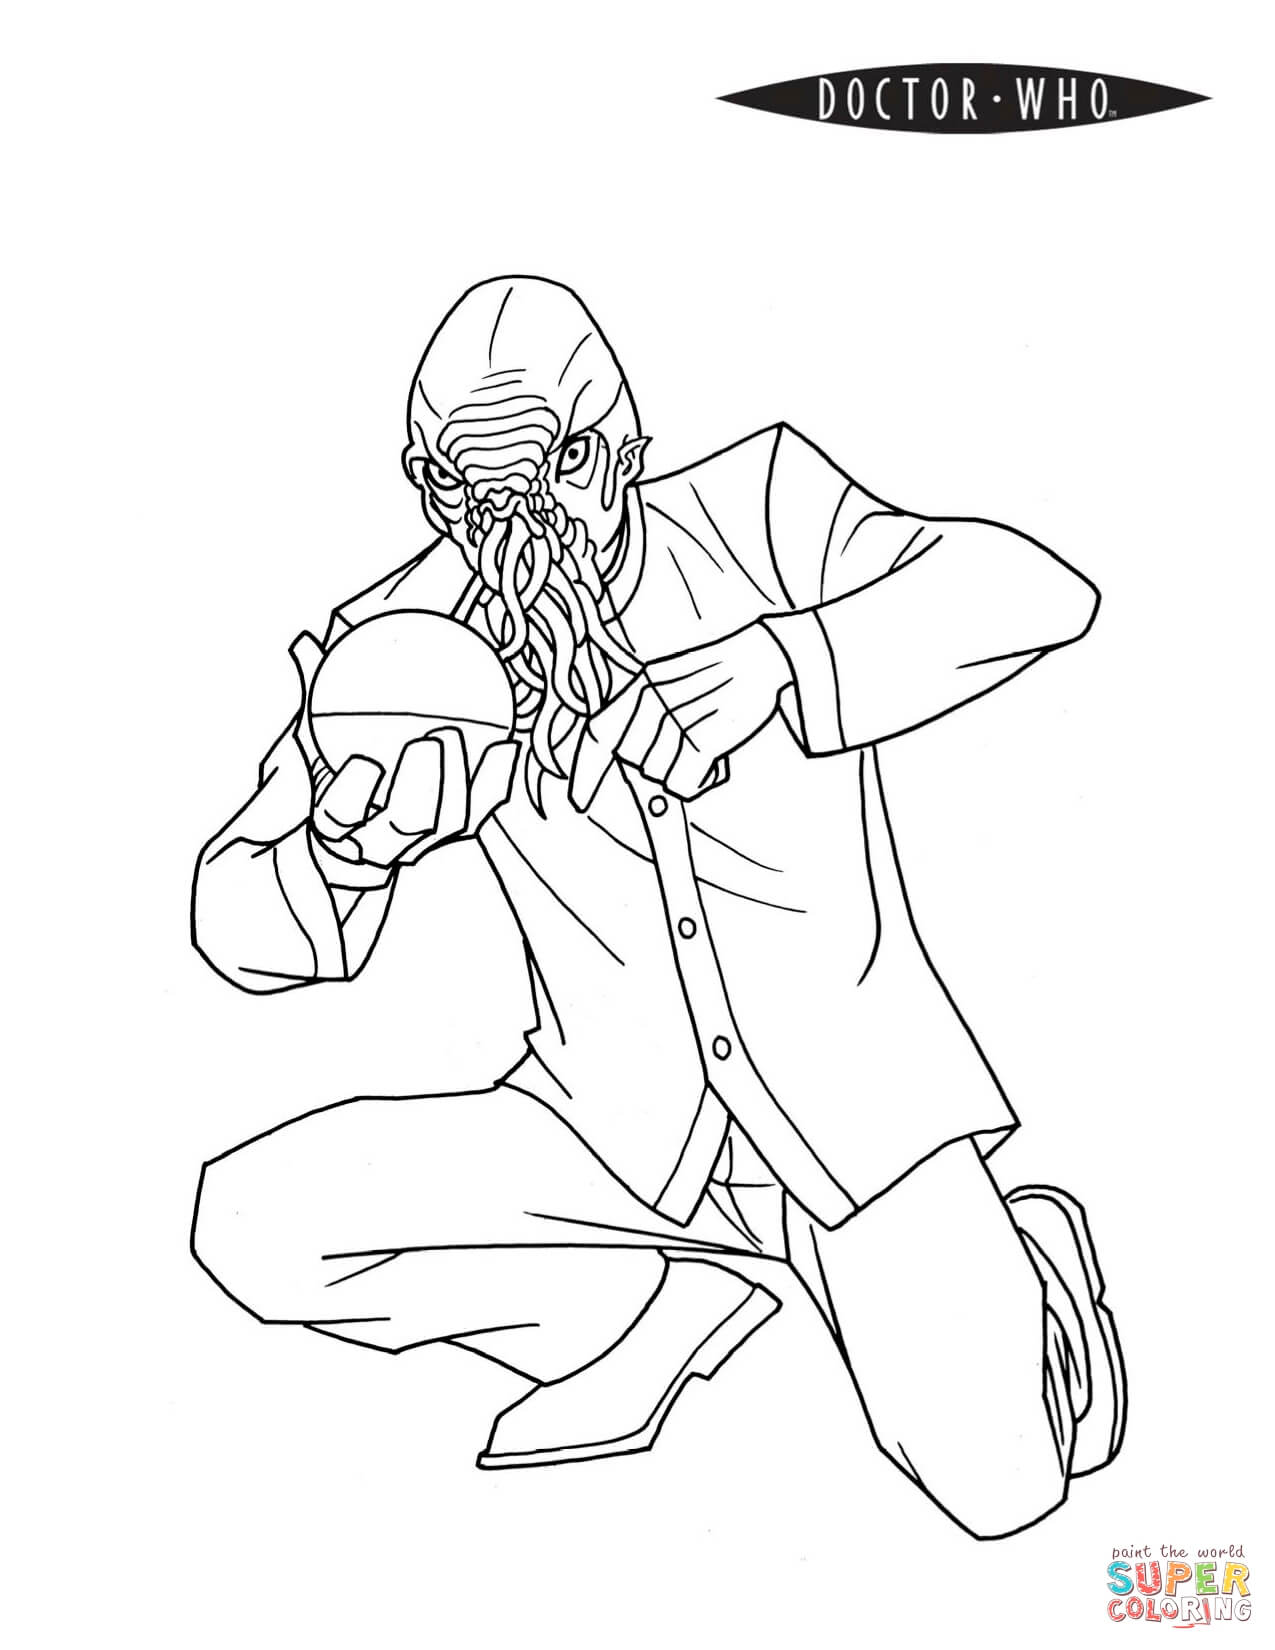 Ood Alien From Doctor Who Coloring Page Free Printable Coloring